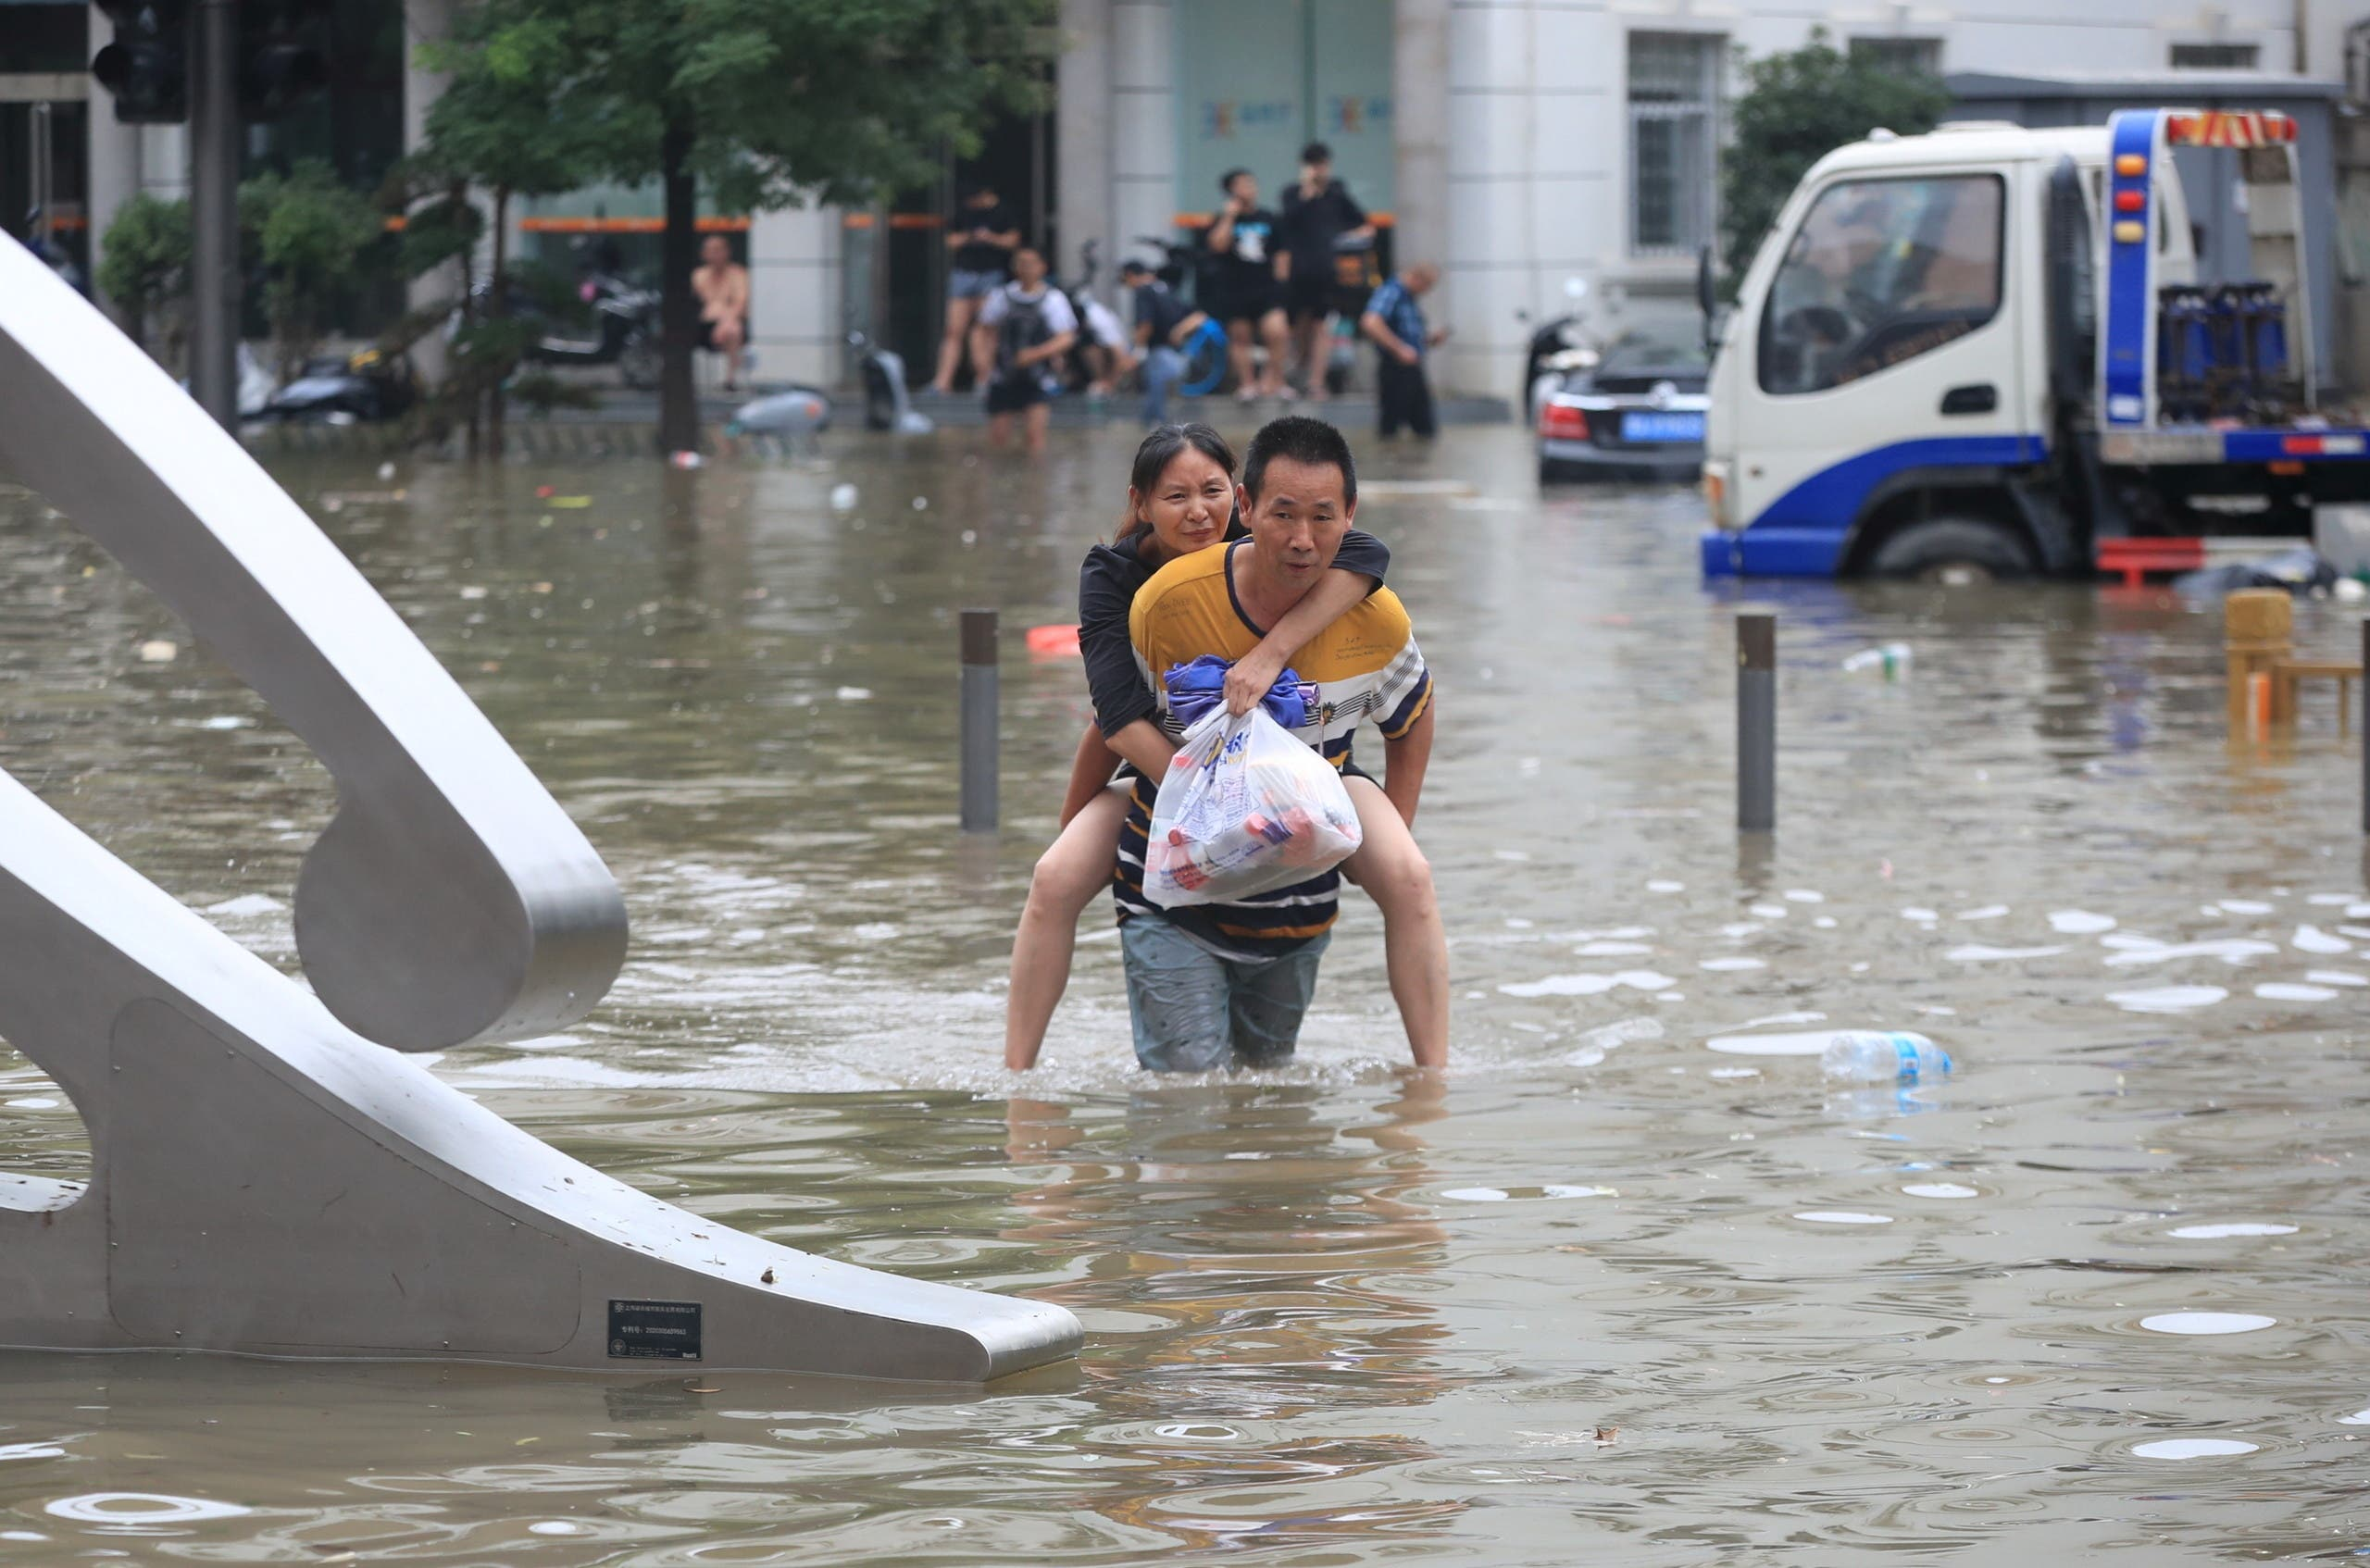 A resident wearing a rain cover stands on a flooded road in Zhengzhou, Henan province, China July 20, 2021. (Reuters)